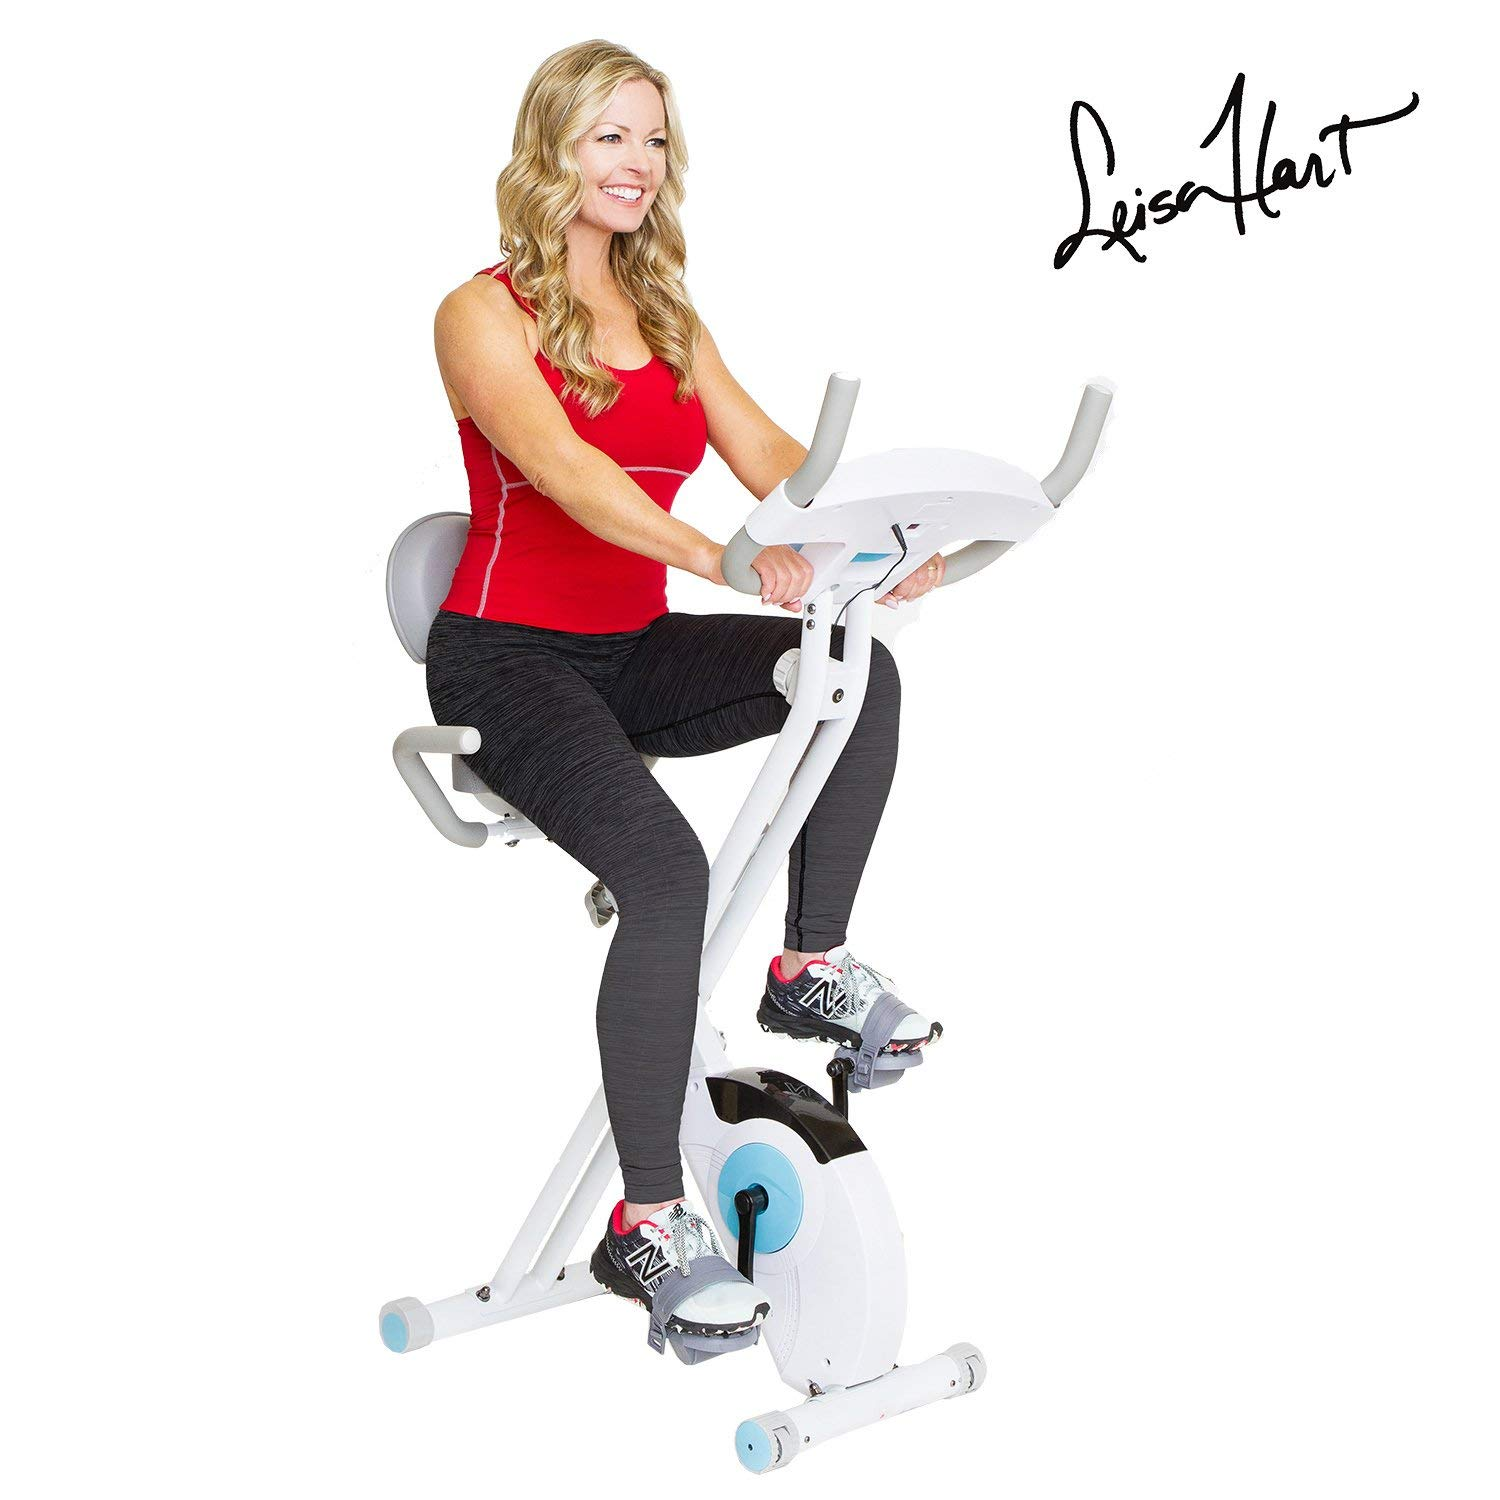 Body Rider Leisa Hart Folding Exercise Peloton Bike, XRB3535